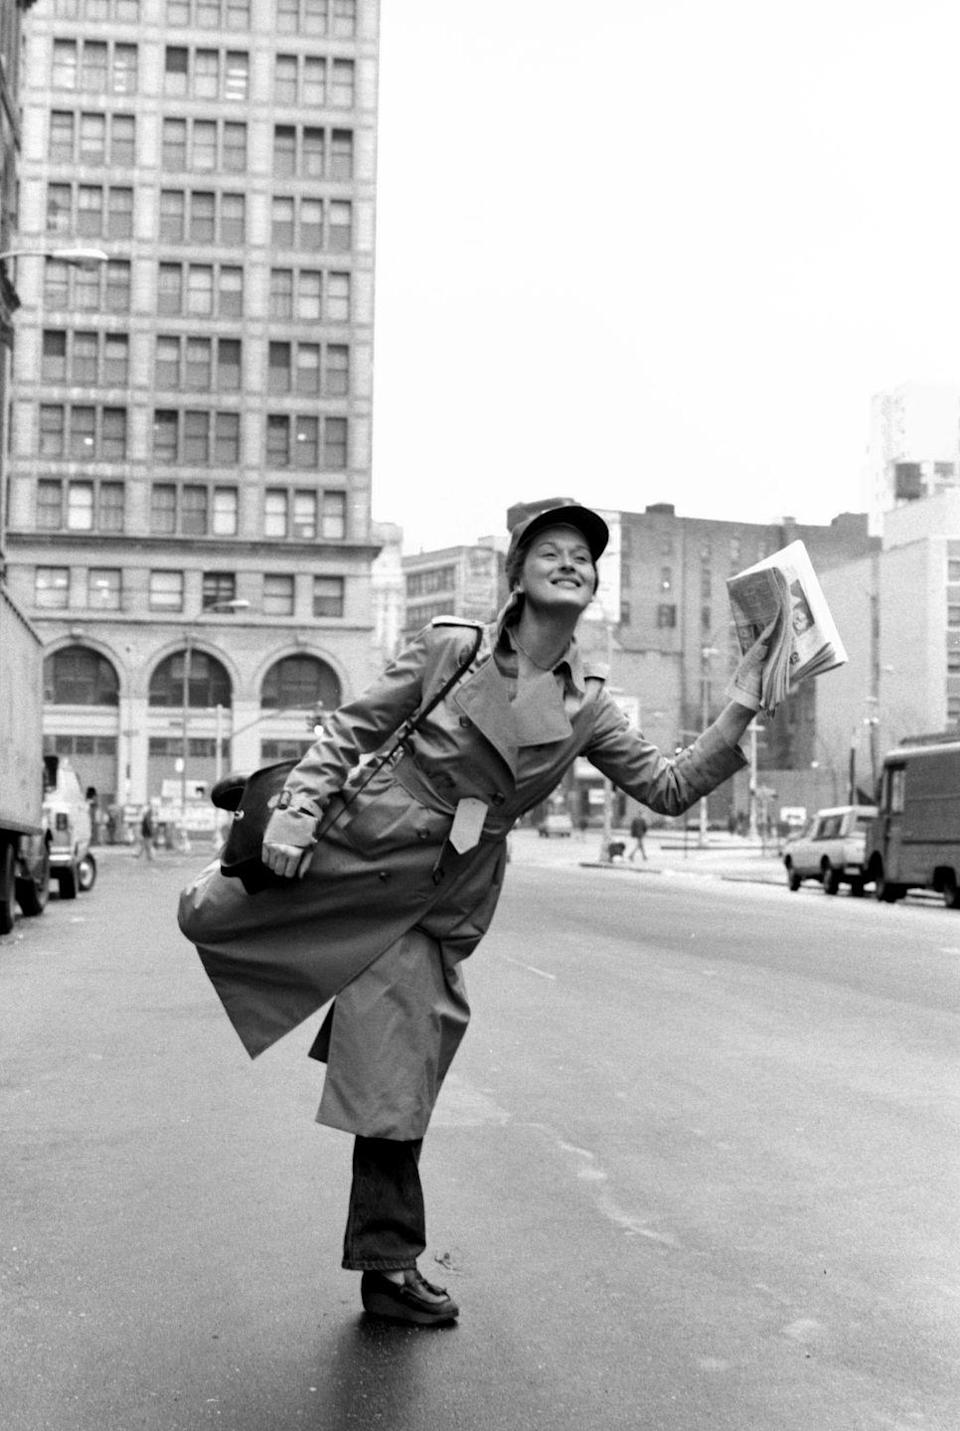 <p>Meryl Streep hailing a cab outside the Public Theater, wearing a baseball cap and trench coat, feels like a forever mood.</p>